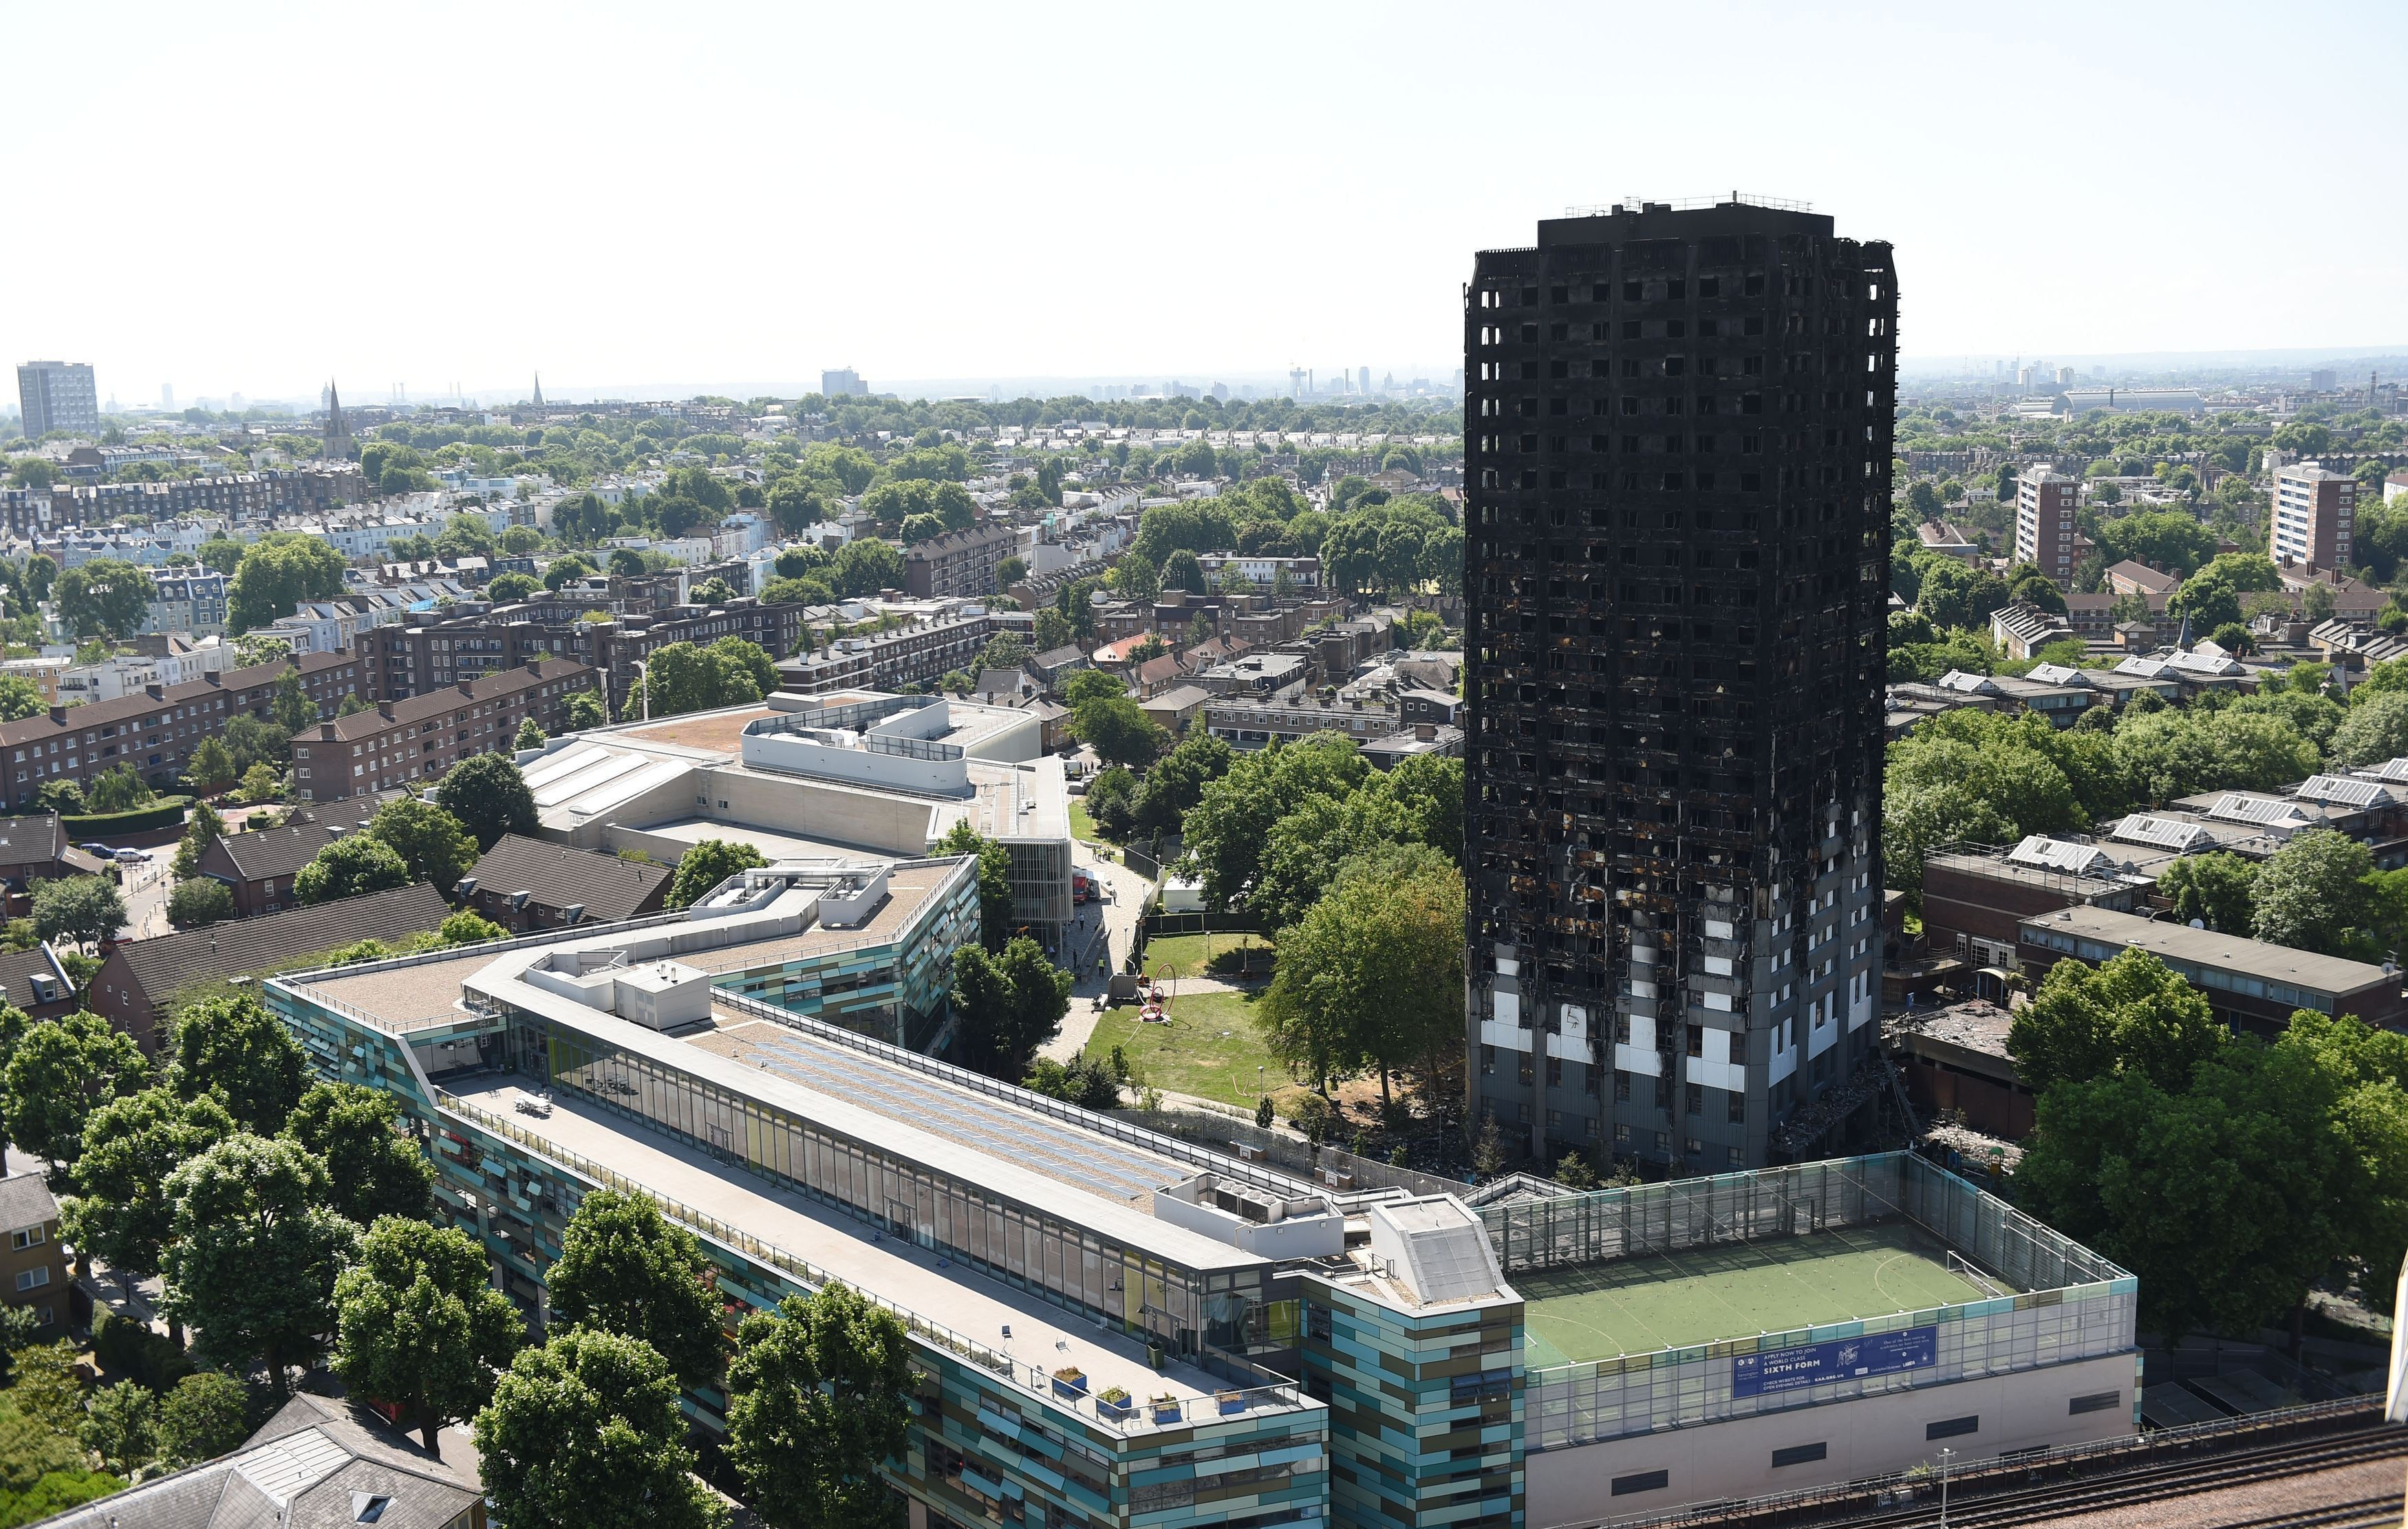 Grenfell Tower Tiles 'Failed Safety Tests' As Police Reveal Origin Of